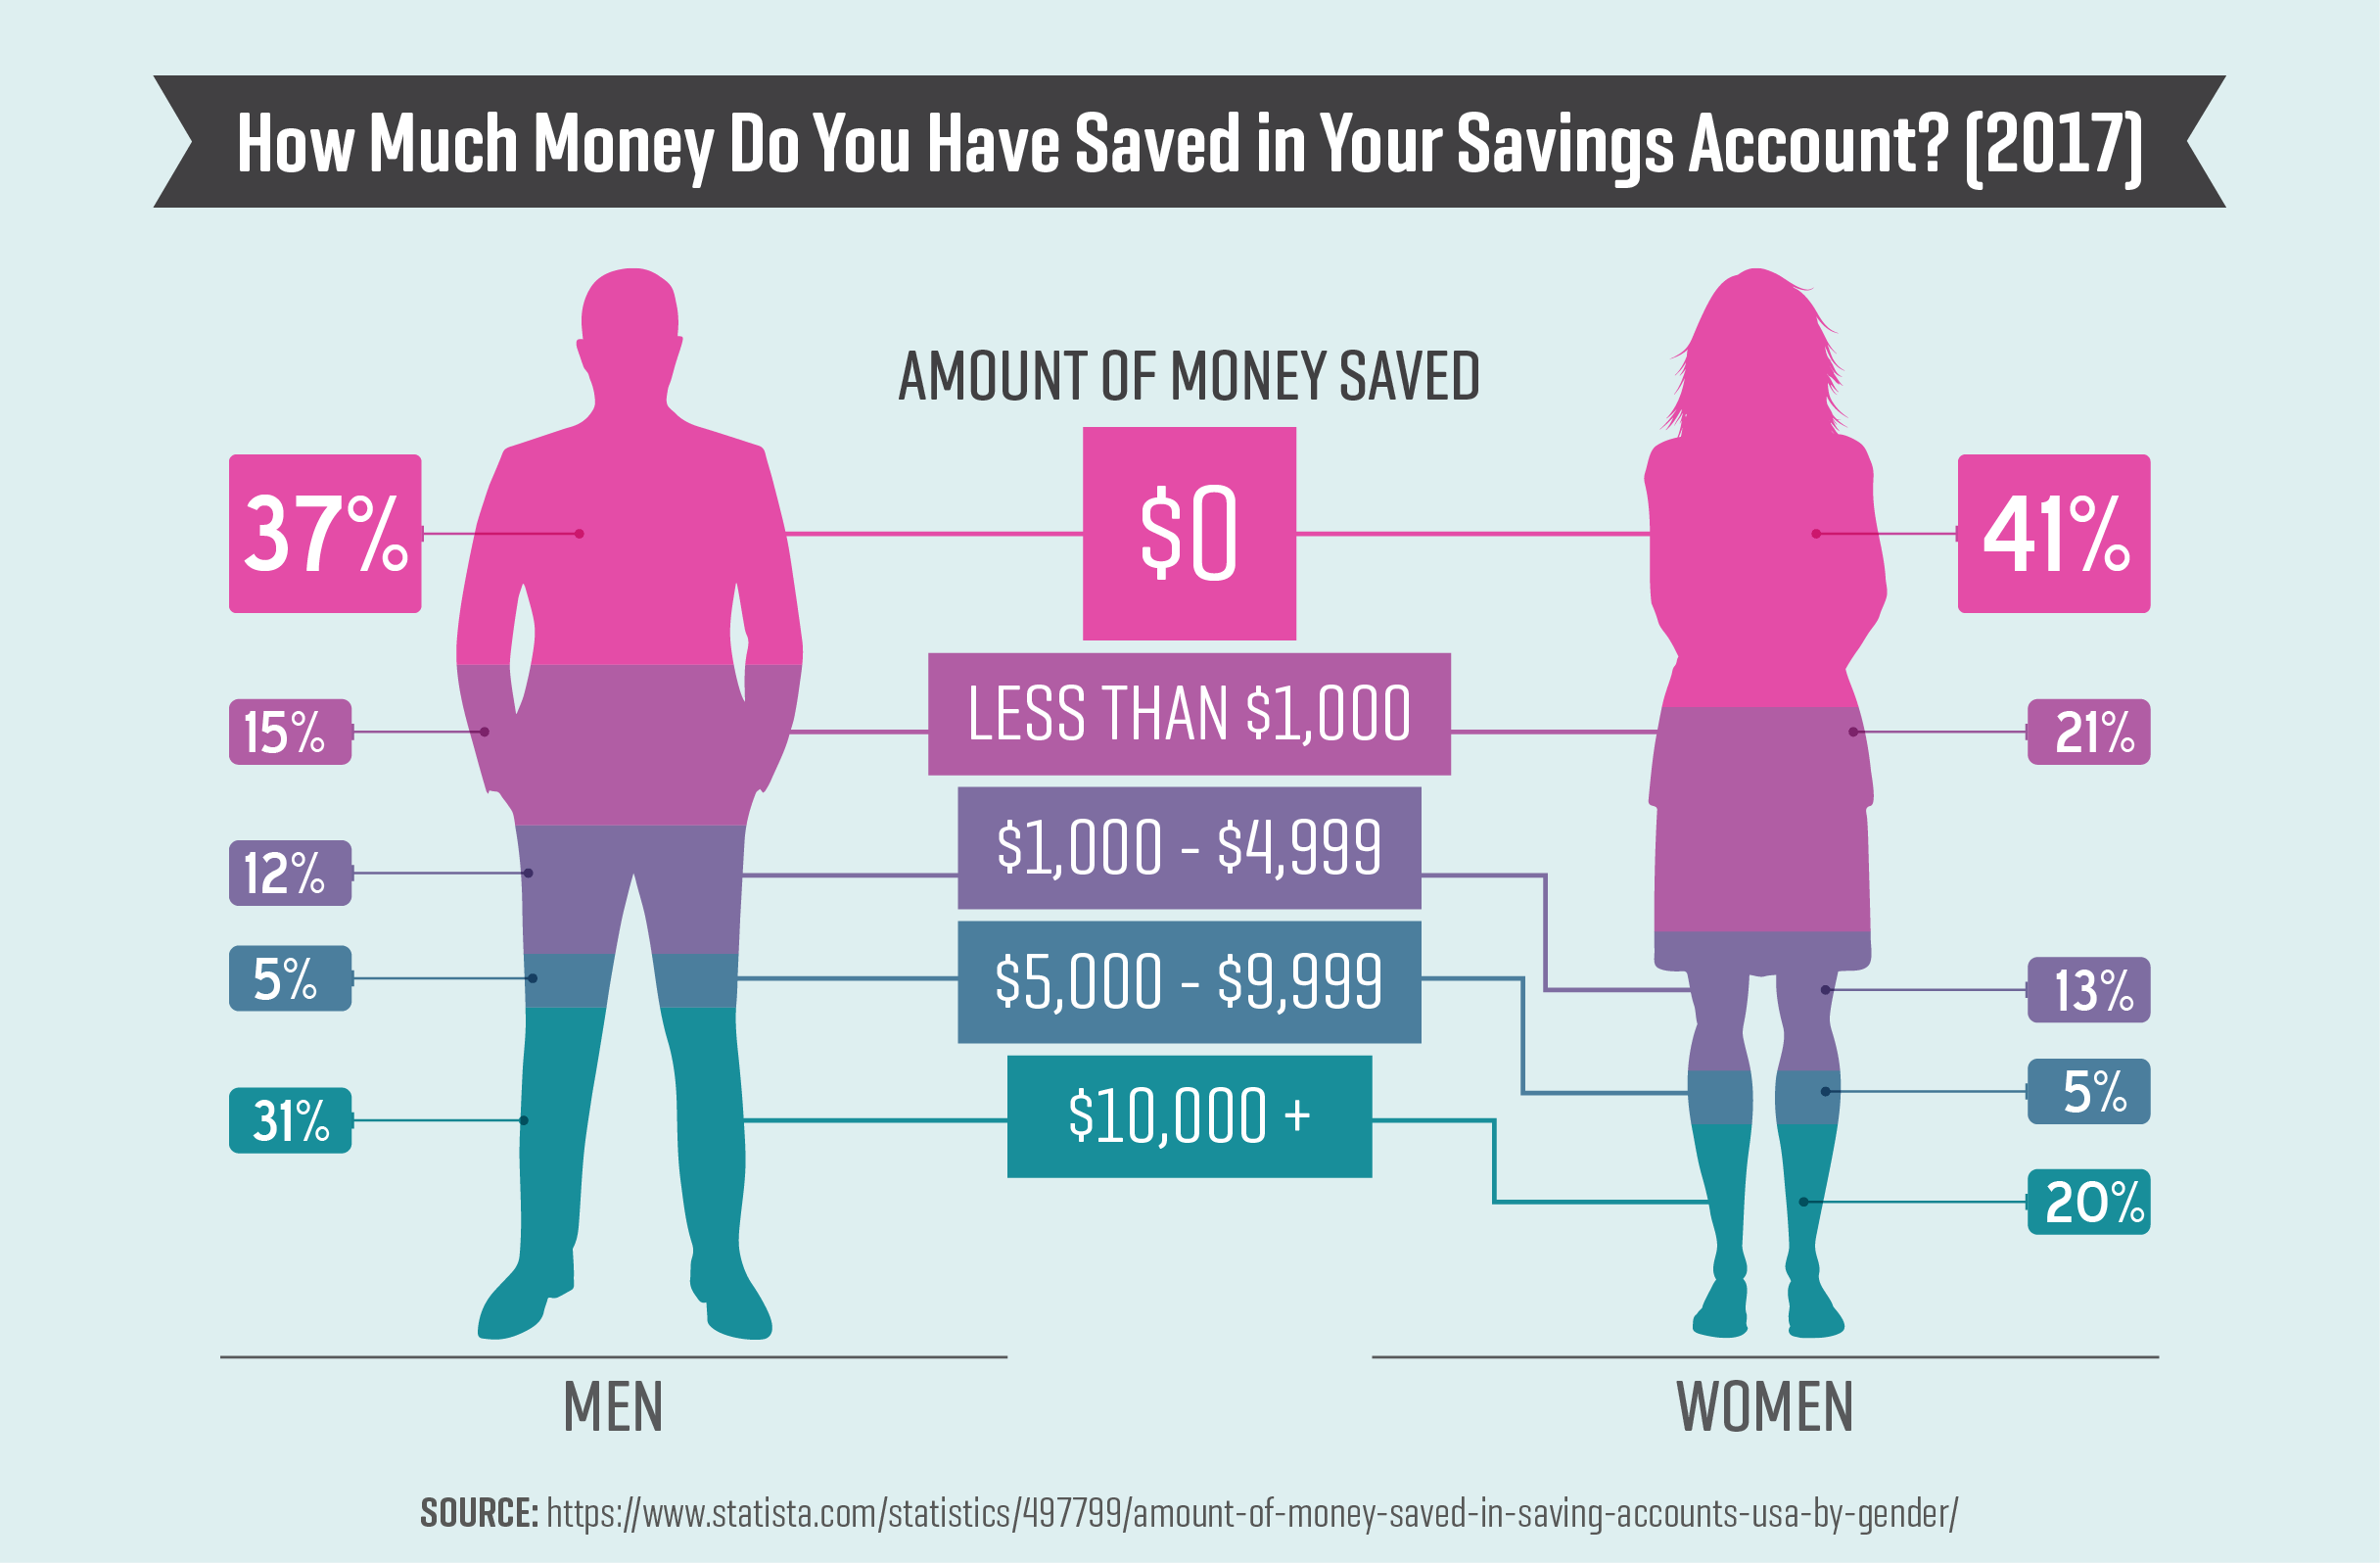 How Much Money Do You Have Saved in Your Savings Account? (2017)